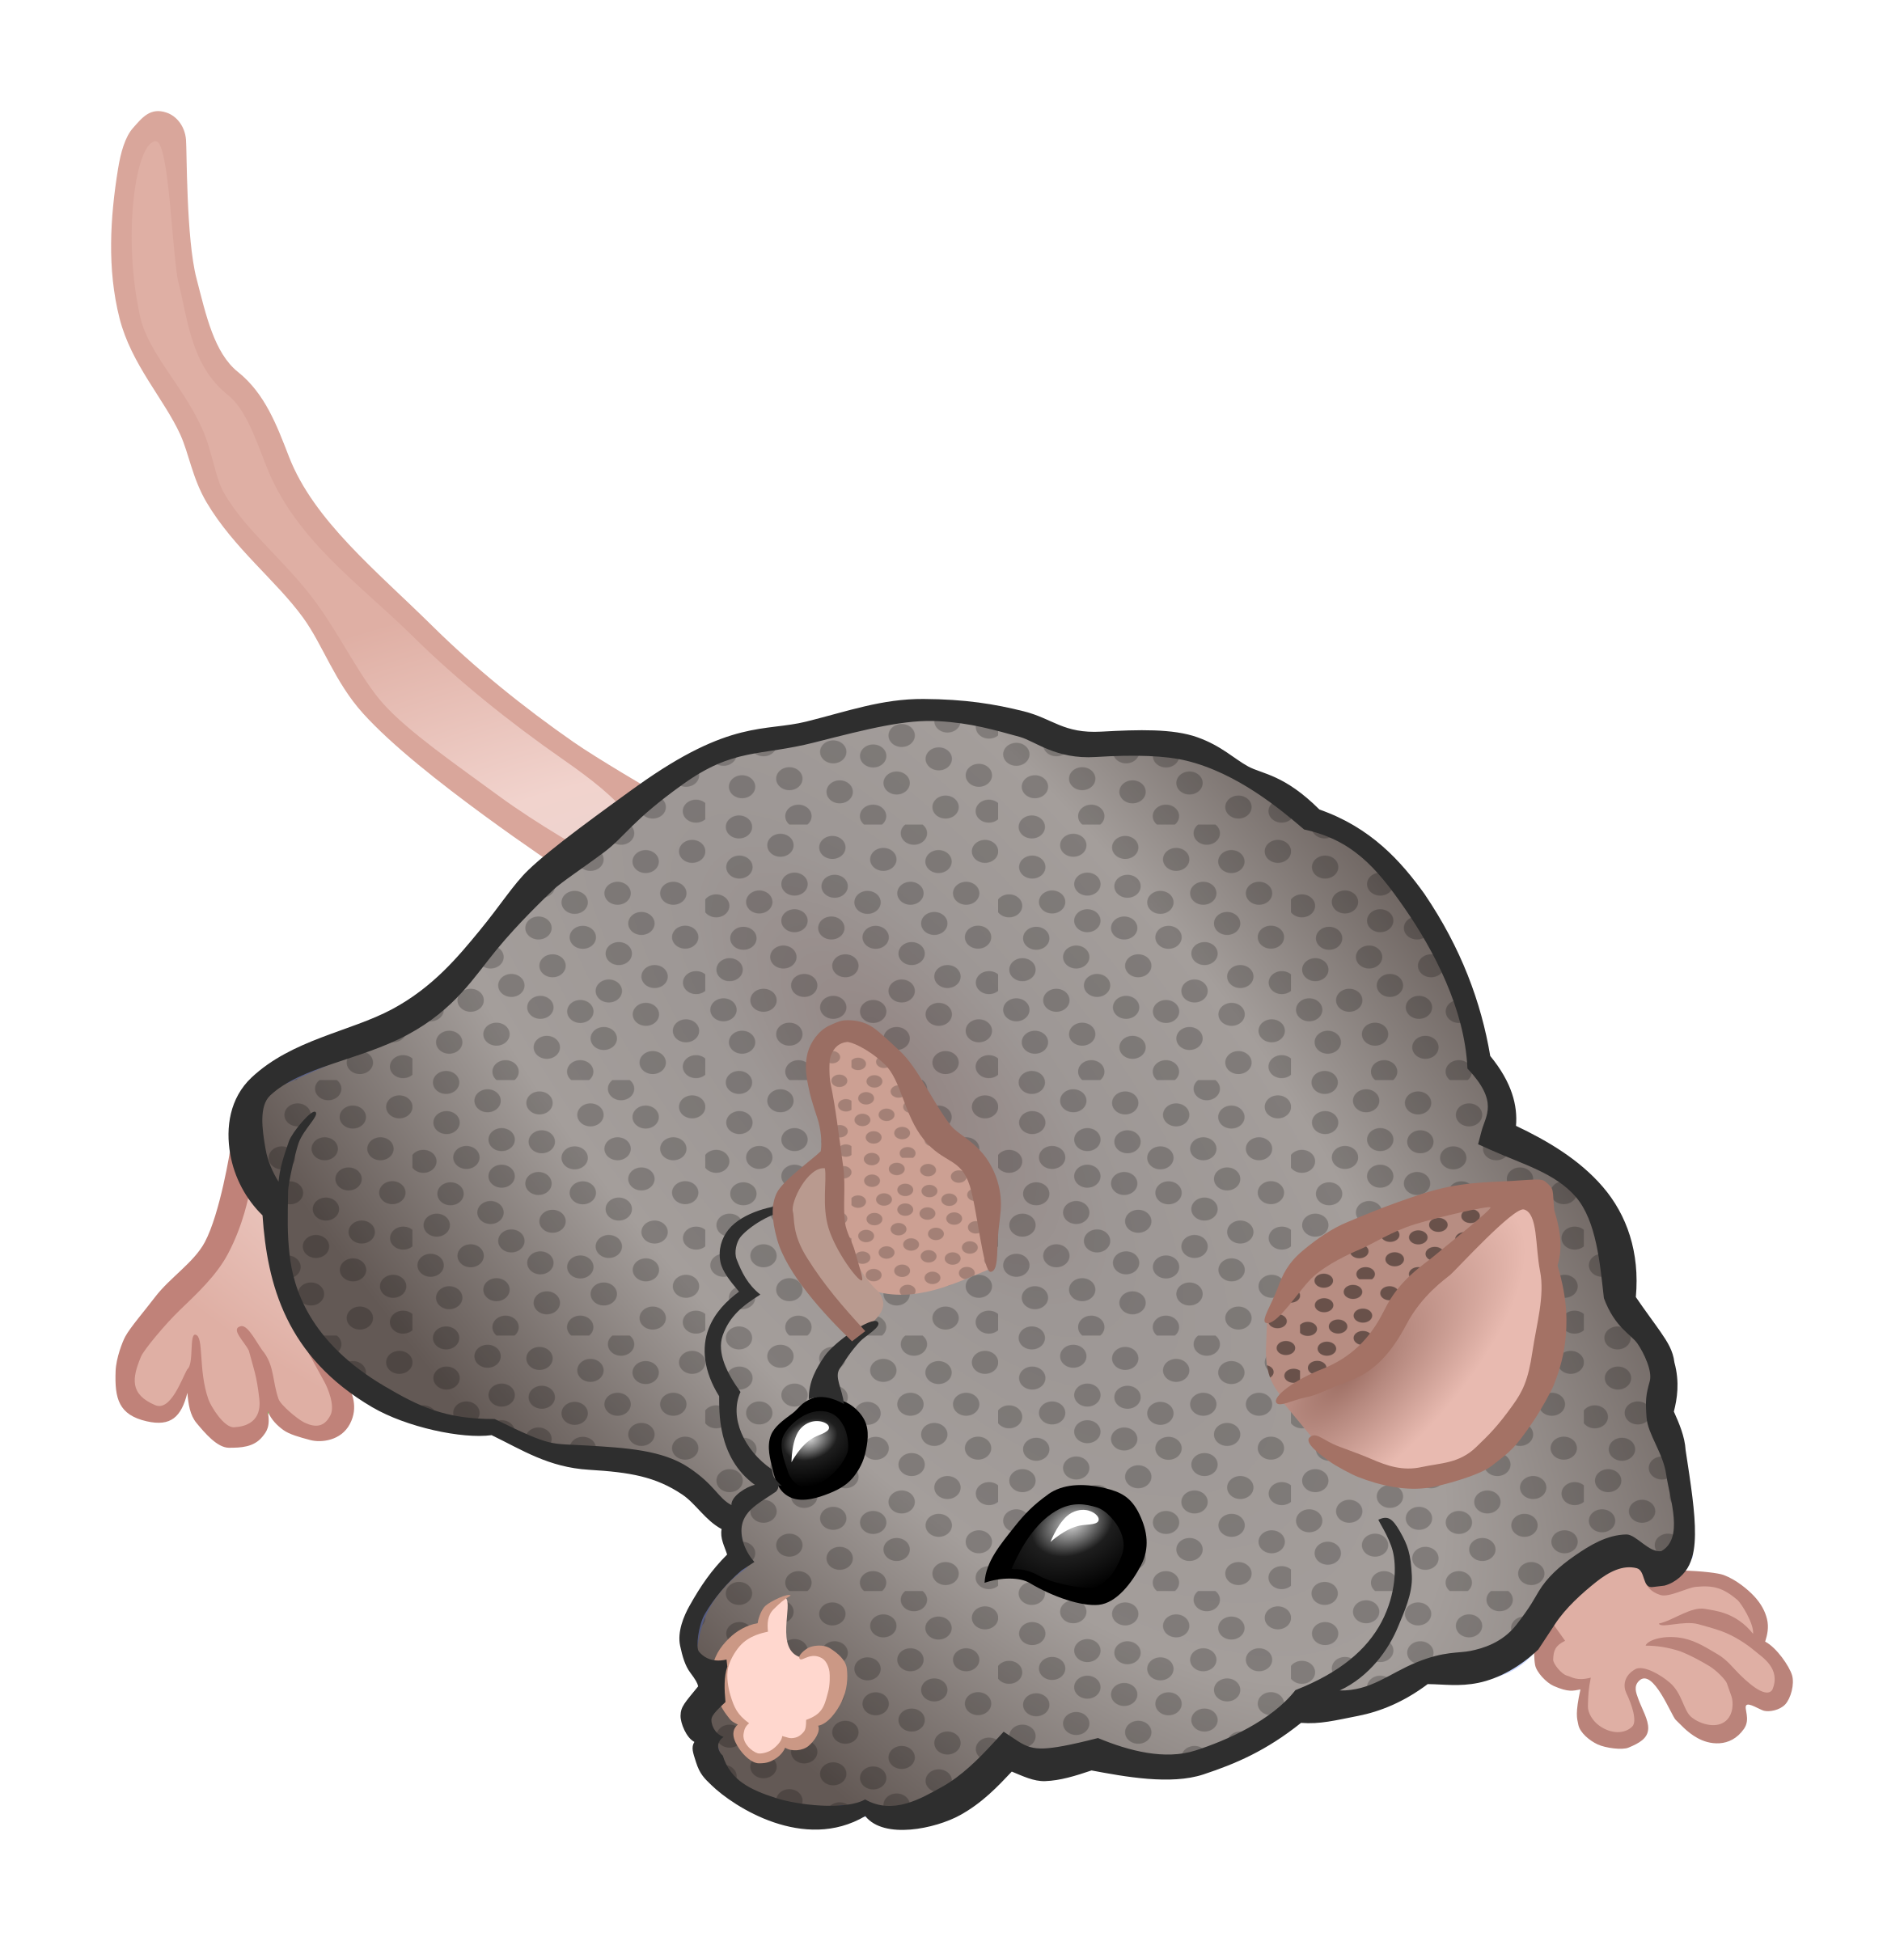 Clipart mouse gray mouse. Coloured big image png